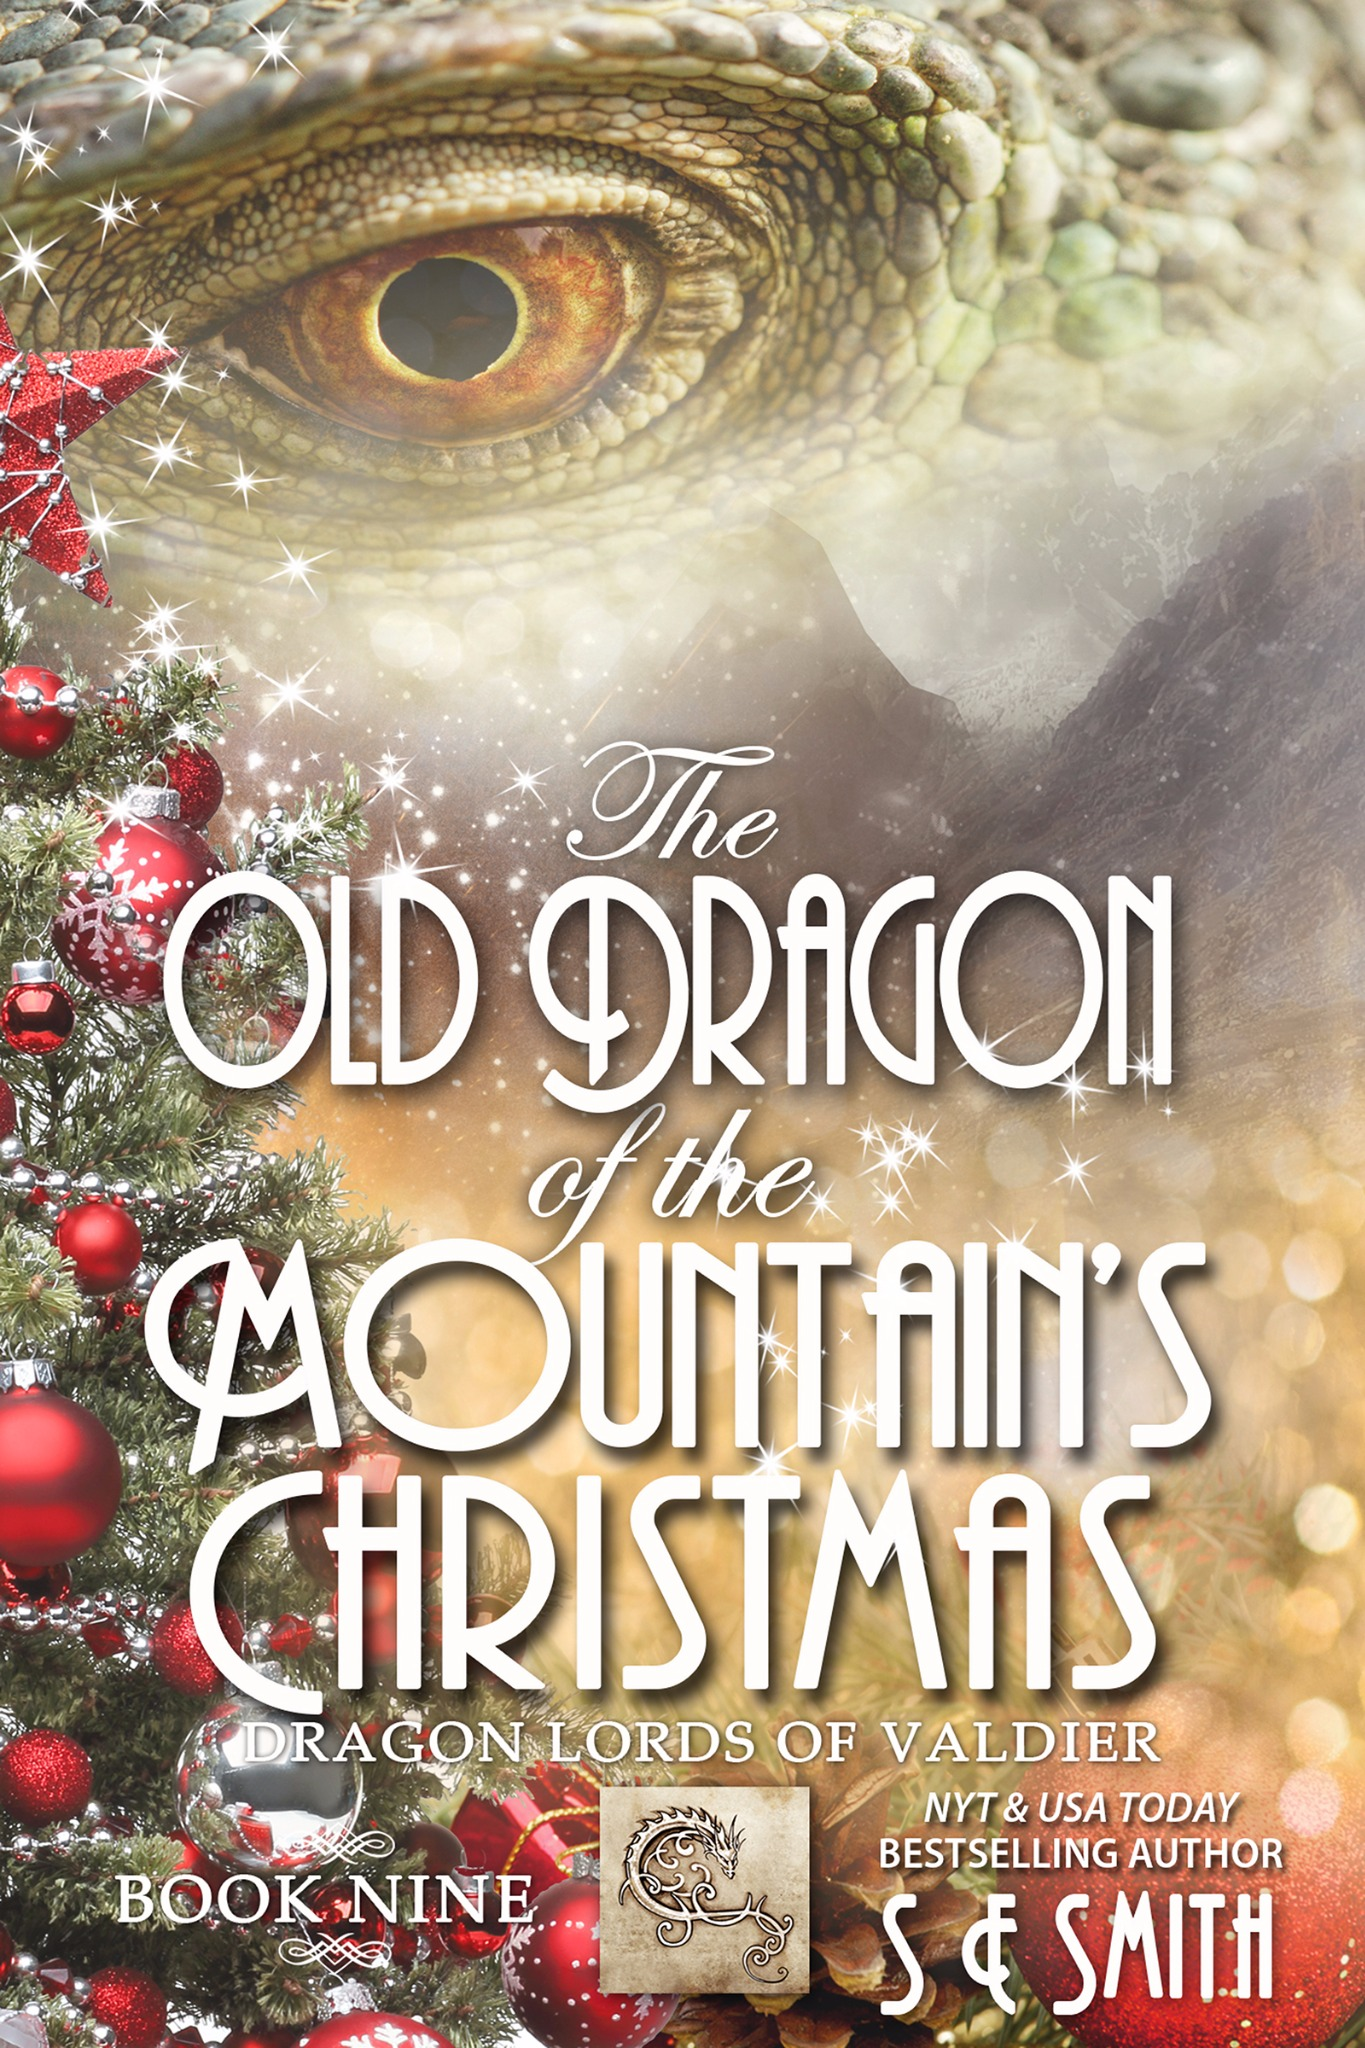 The Old Dragon of the Mountain's Christmas: Dragon Lords of Valdier Book 9 (Paperback)